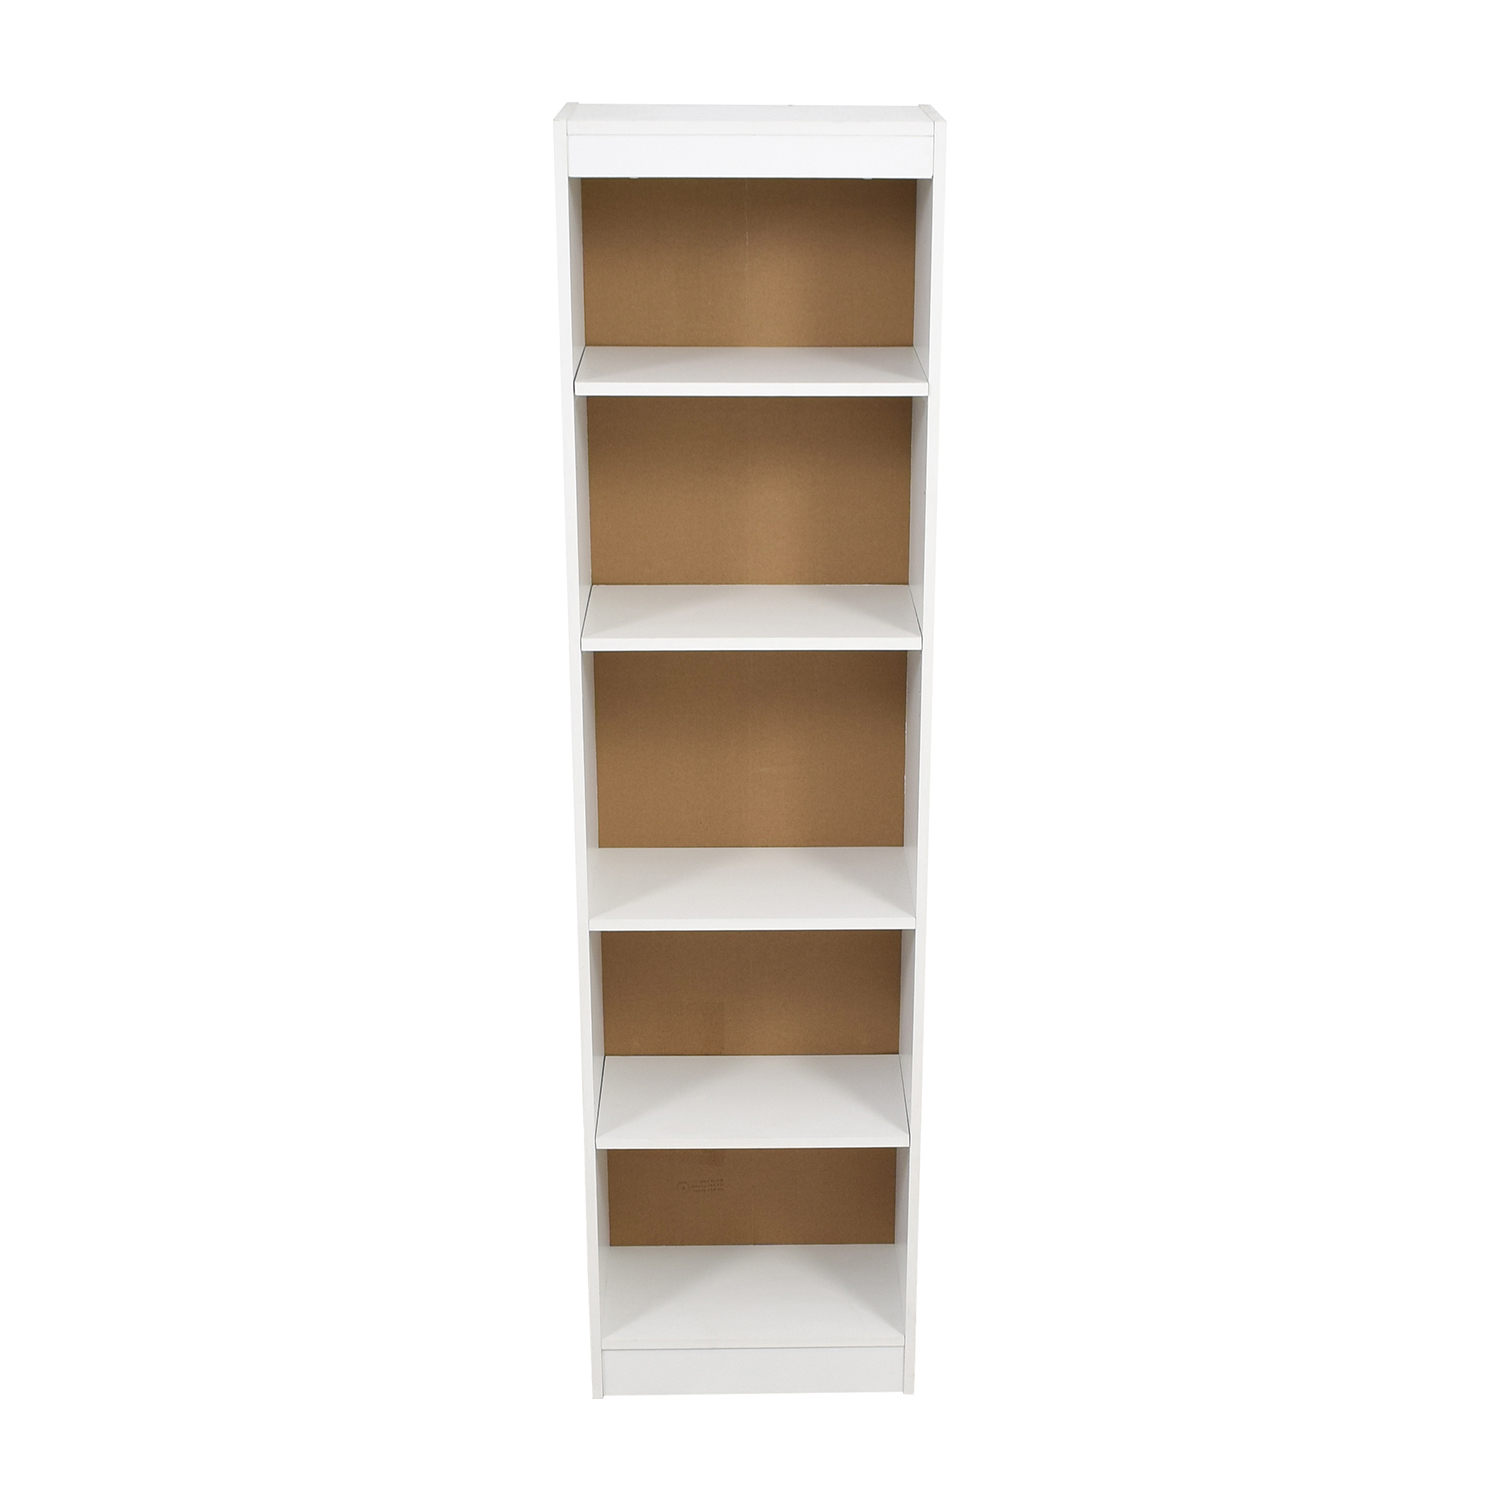 South Shore Axess South Shore Axess White Narrow Book Case discount